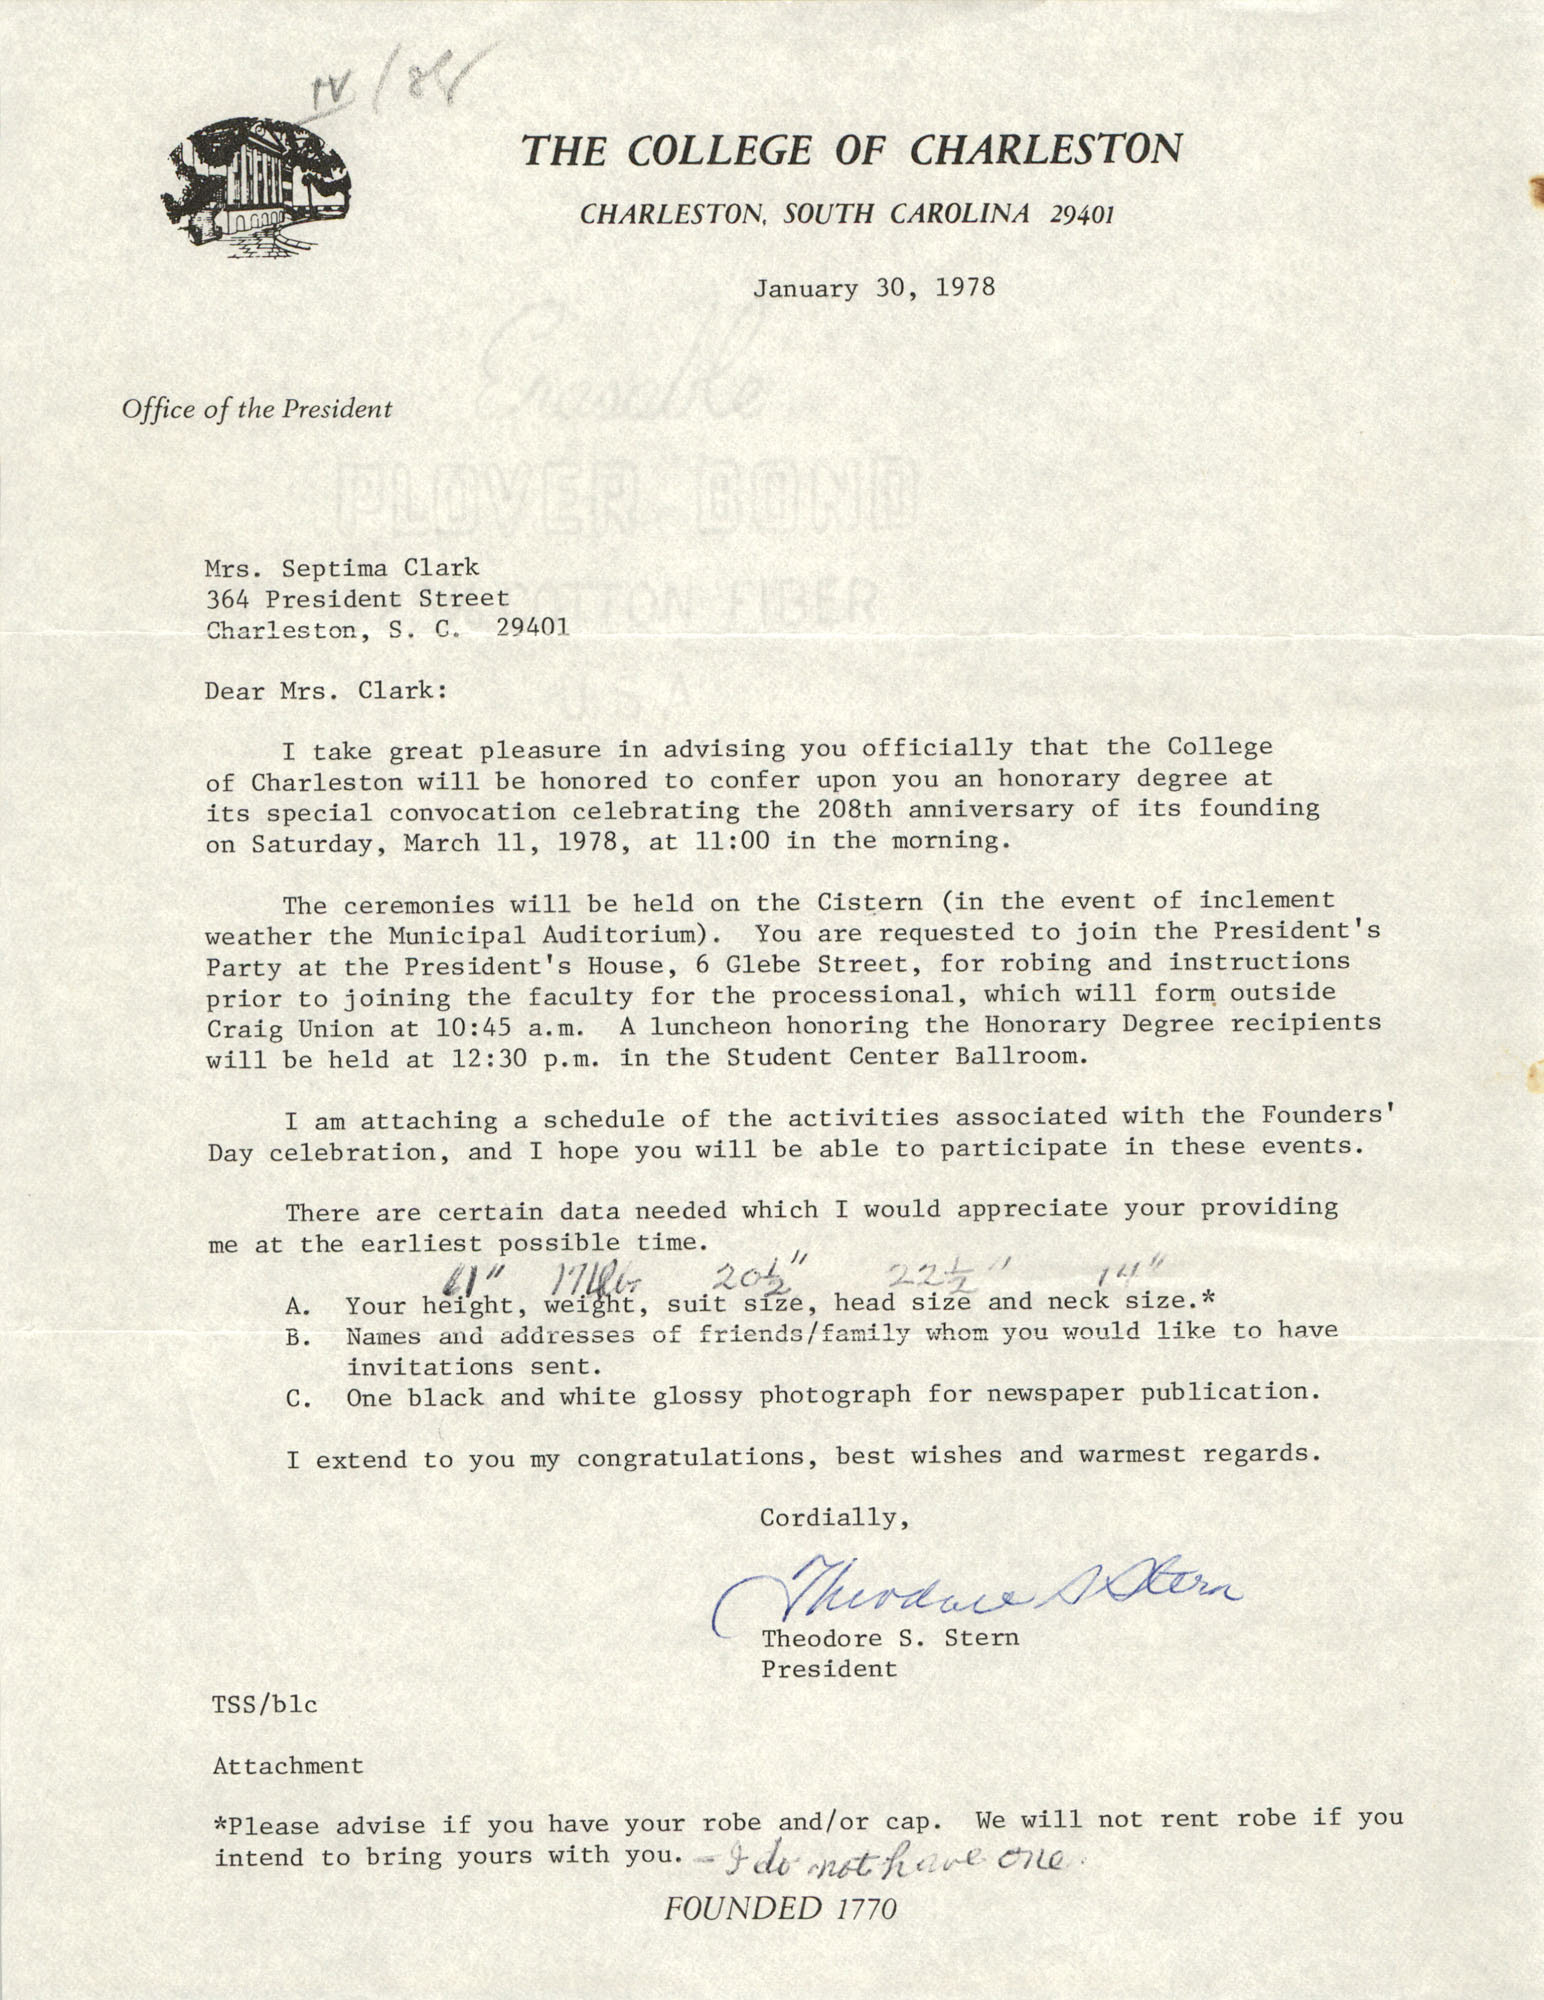 Letter from Theodore S. Stern to Septima P. Clark, January 30, 1978